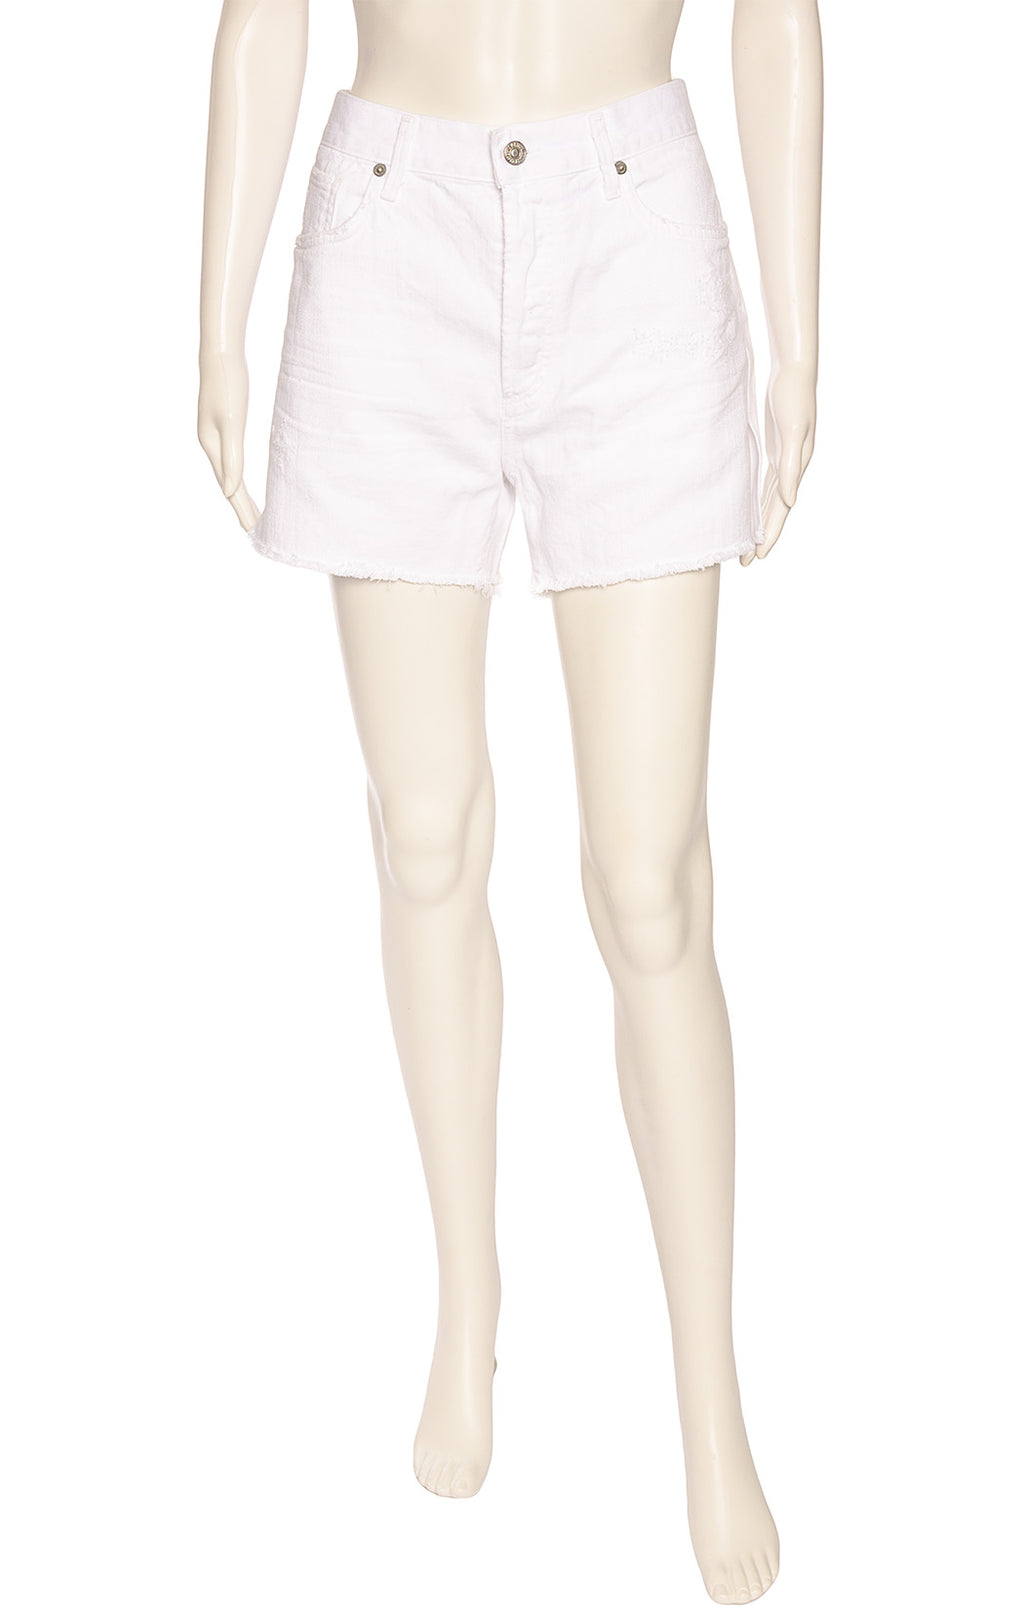 "Front view of CITIZENS OF HUMANITY Shorts Size: 30"" W"